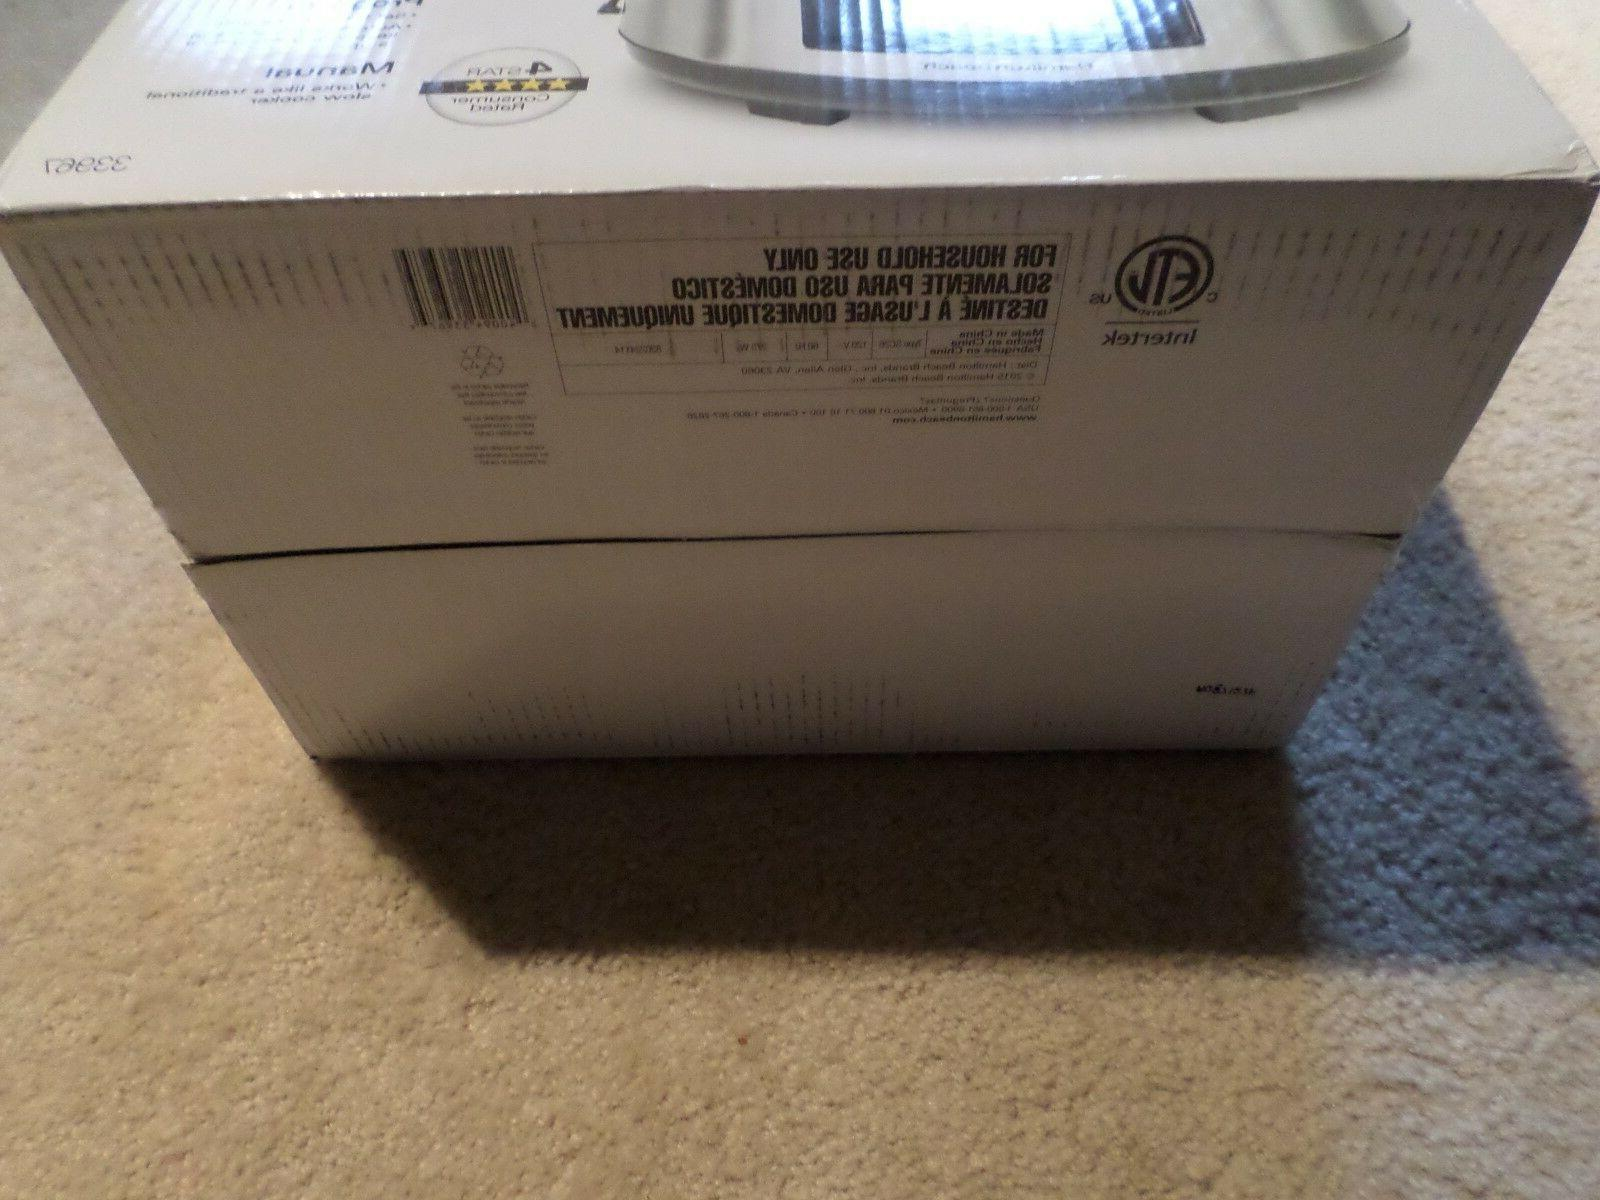 Hamilton Beach Set Forget Cooker With Temperature Probe